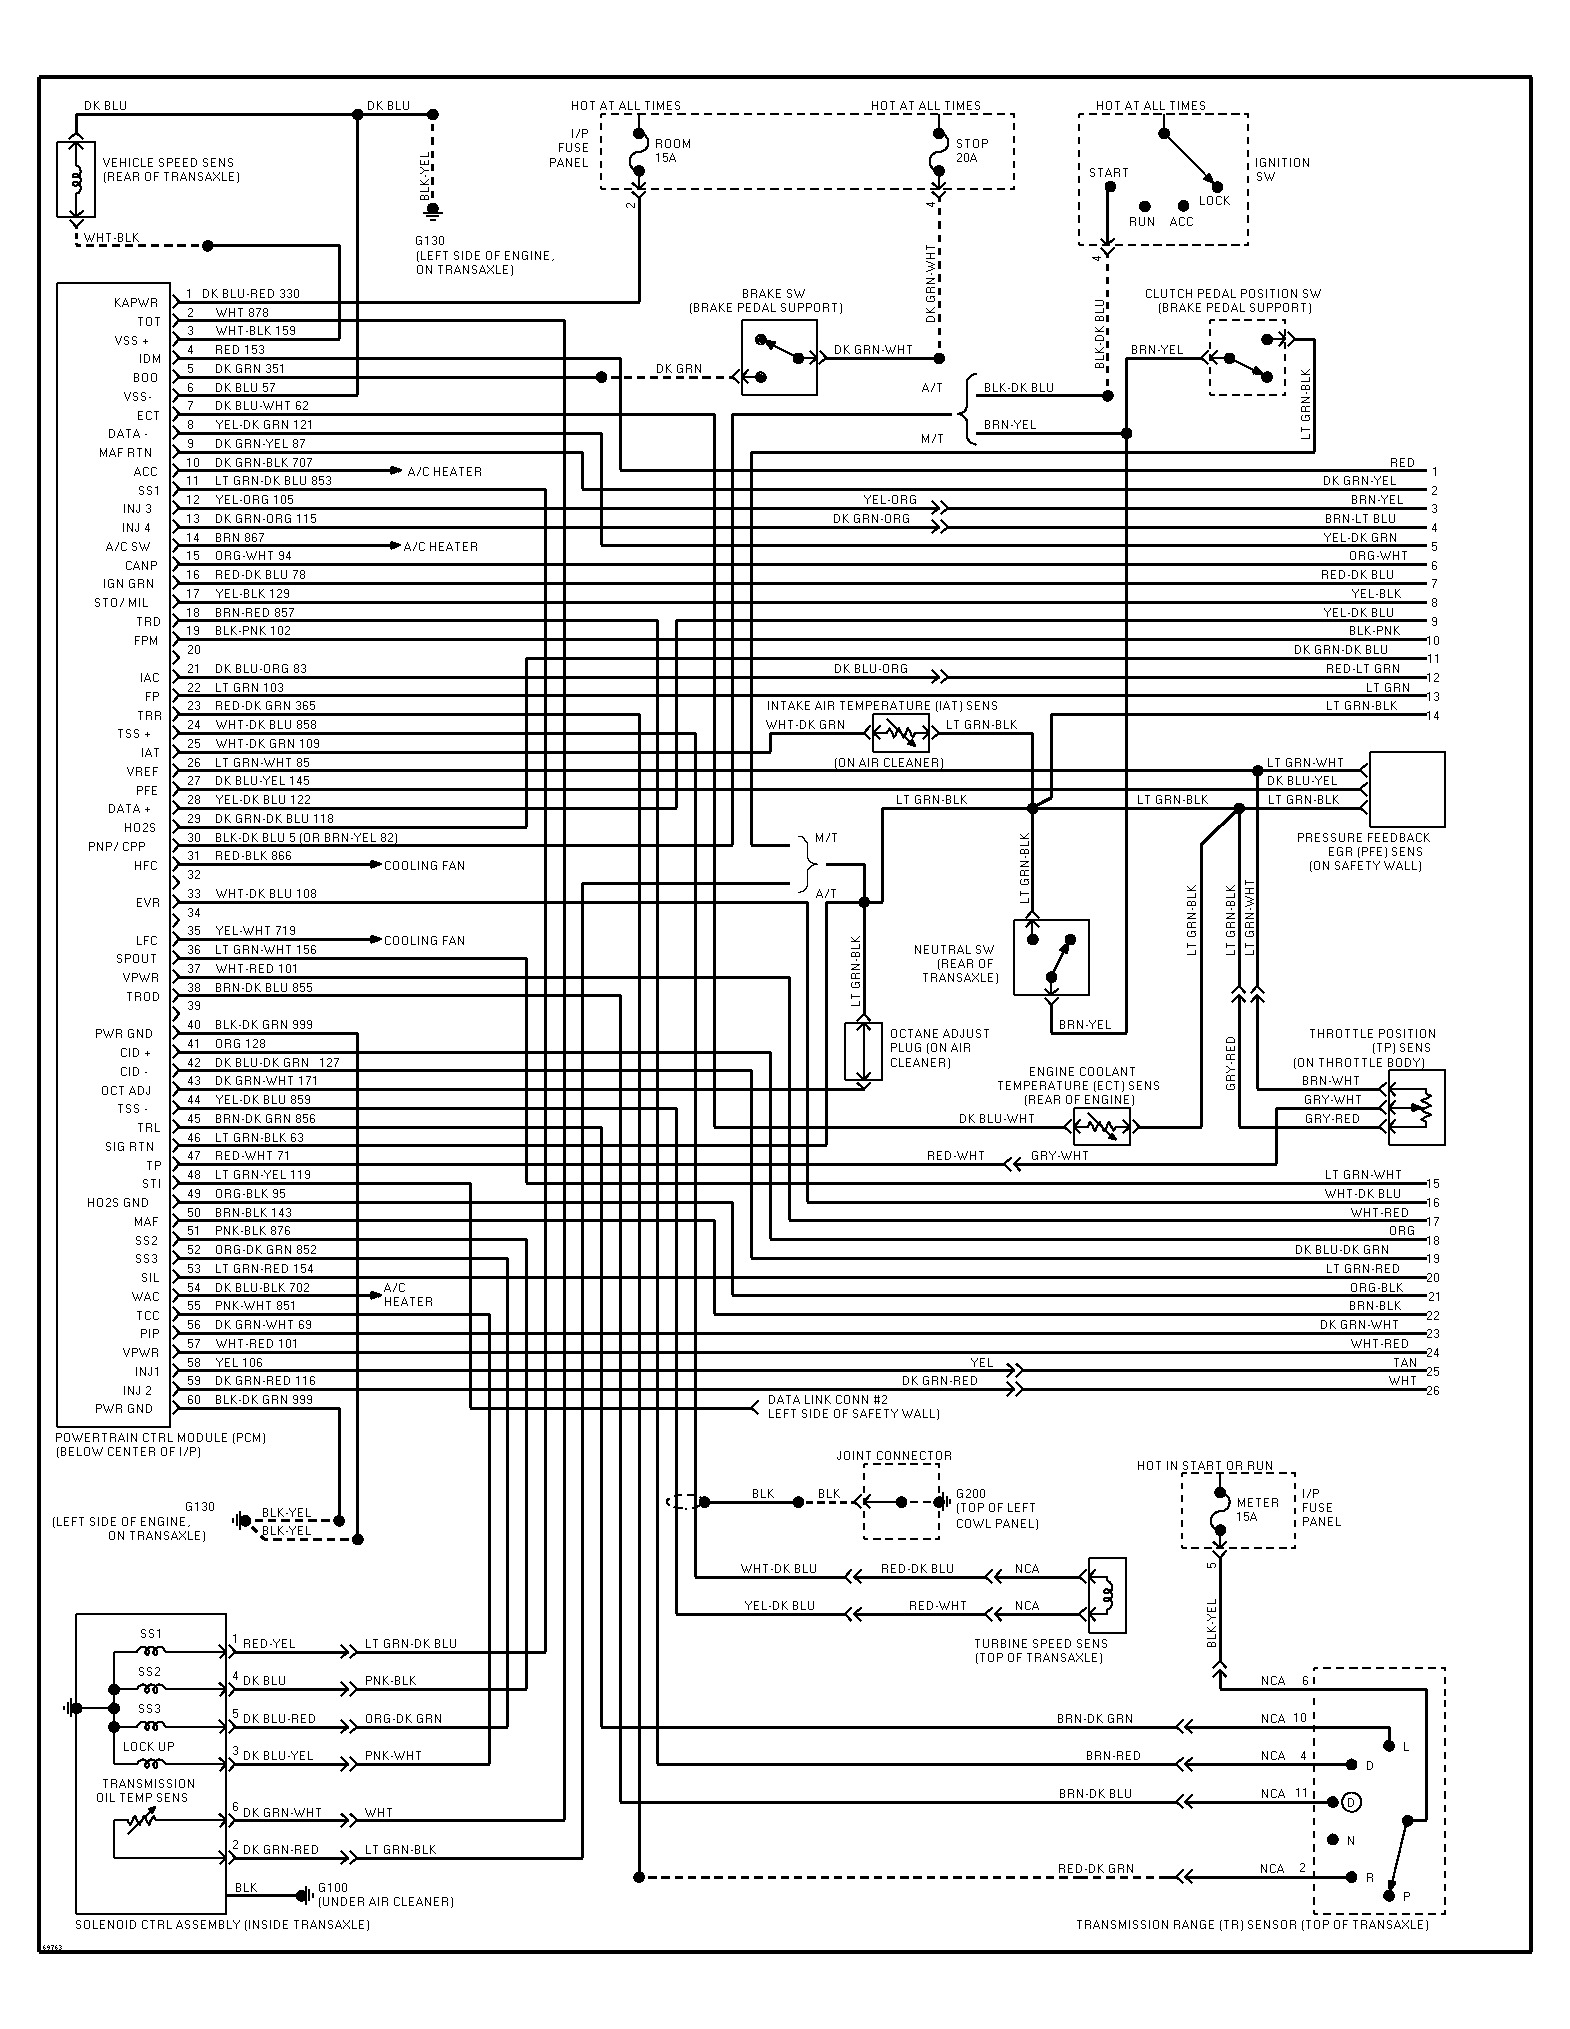 original 1995 ford escort wiring diagram i need to find a color coded 1998 ford escort wiring diagram at pacquiaovsvargaslive.co